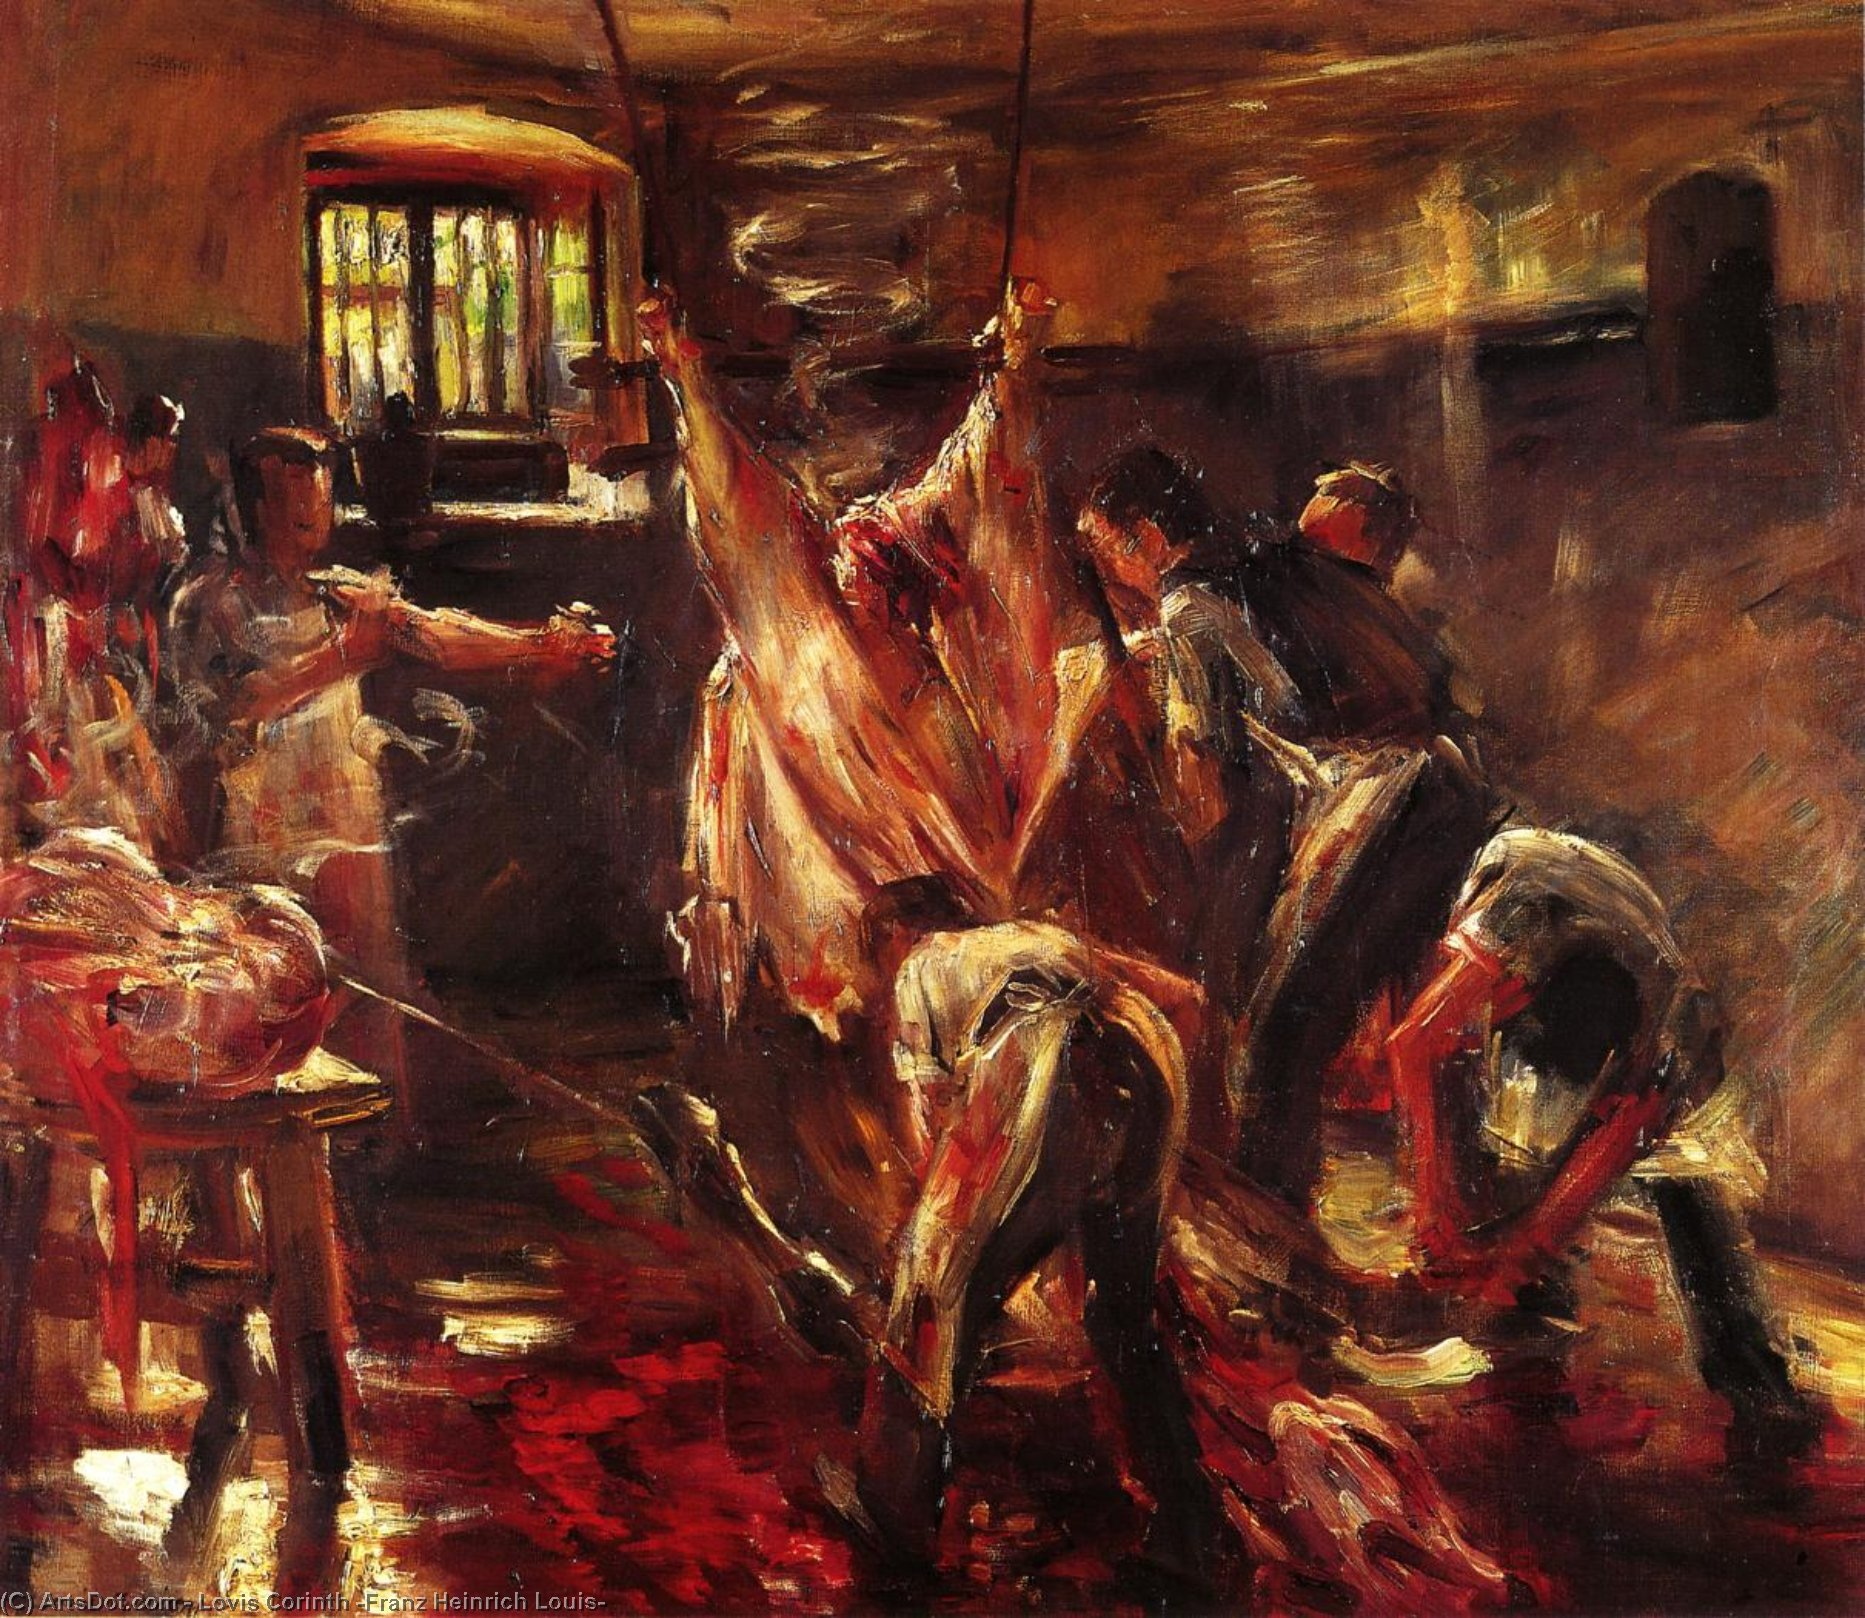 Wikioo.org - The Encyclopedia of Fine Arts - Painting, Artwork by Lovis Corinth (Franz Heinrich Louis) - In the Slaughter House